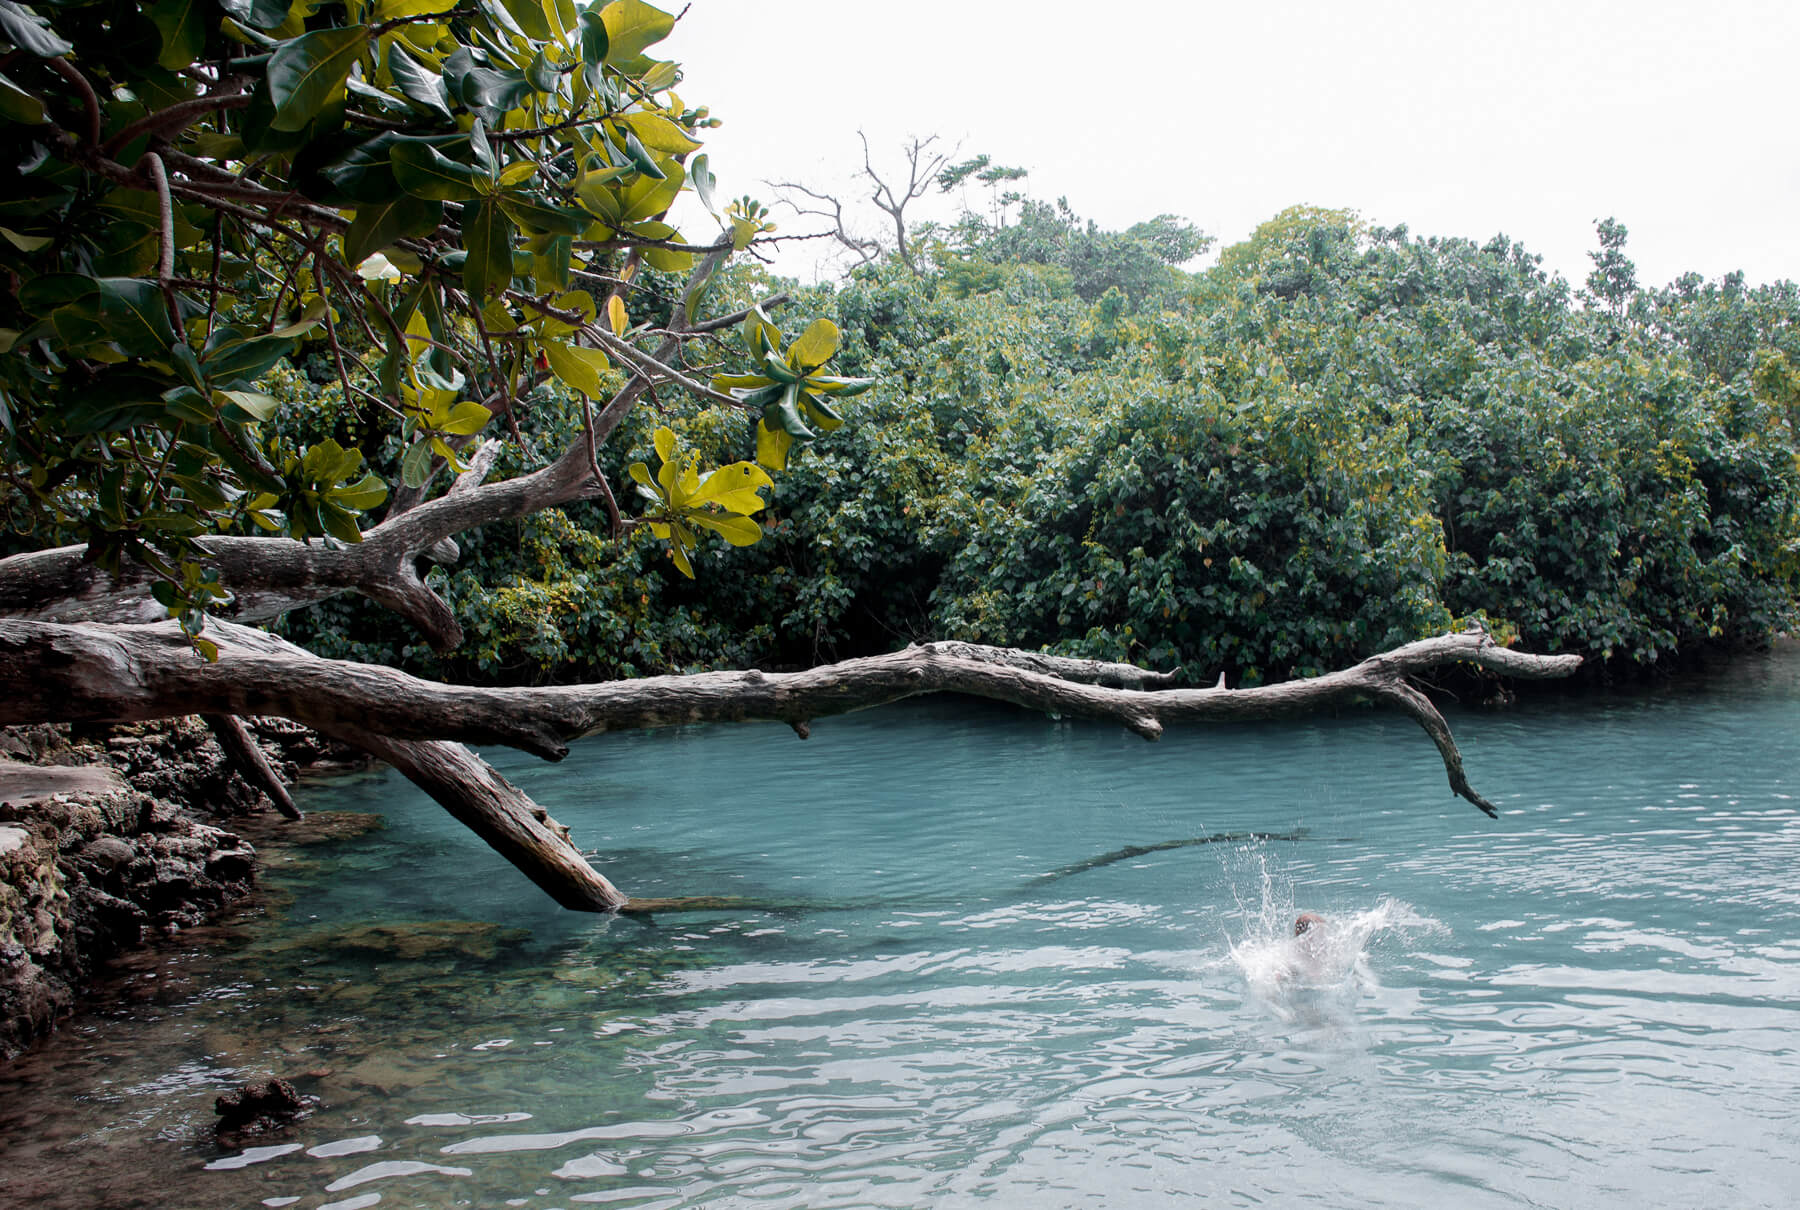 A person jumping of a tree branch into a blue lagoon creating a big splash